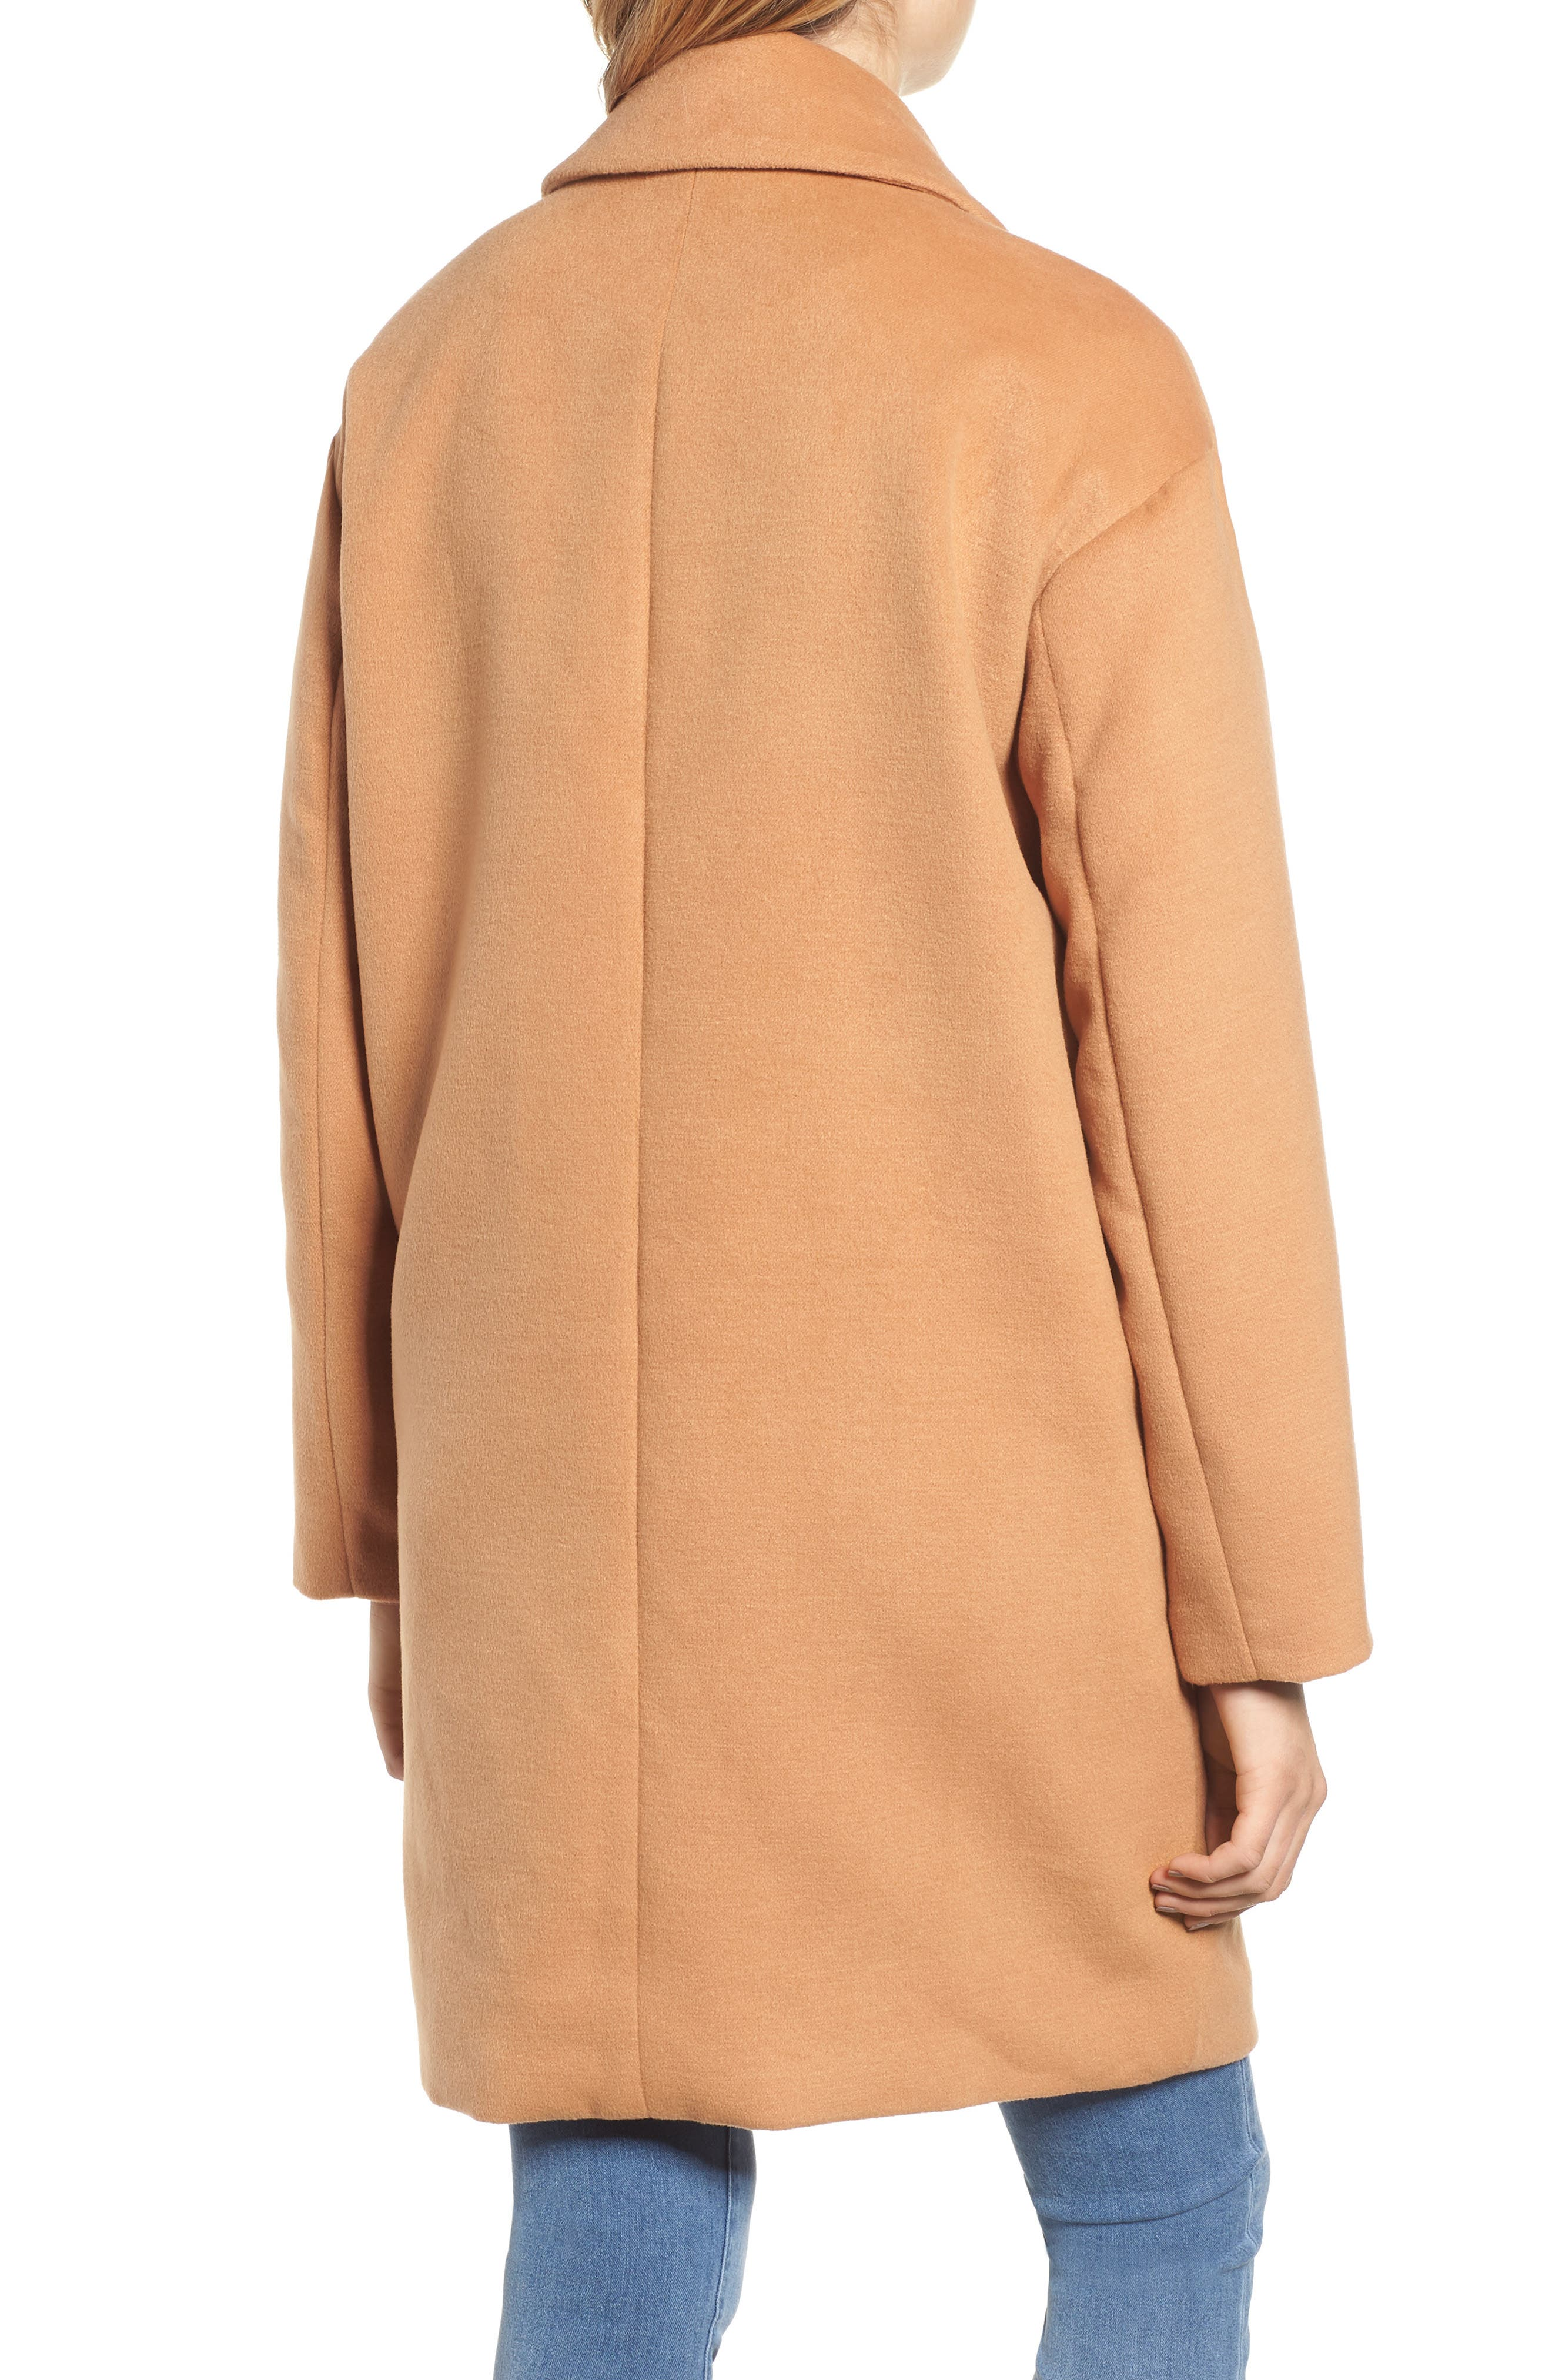 Oversize Double Breasted Coat,                             Alternate thumbnail 2, color,                             230